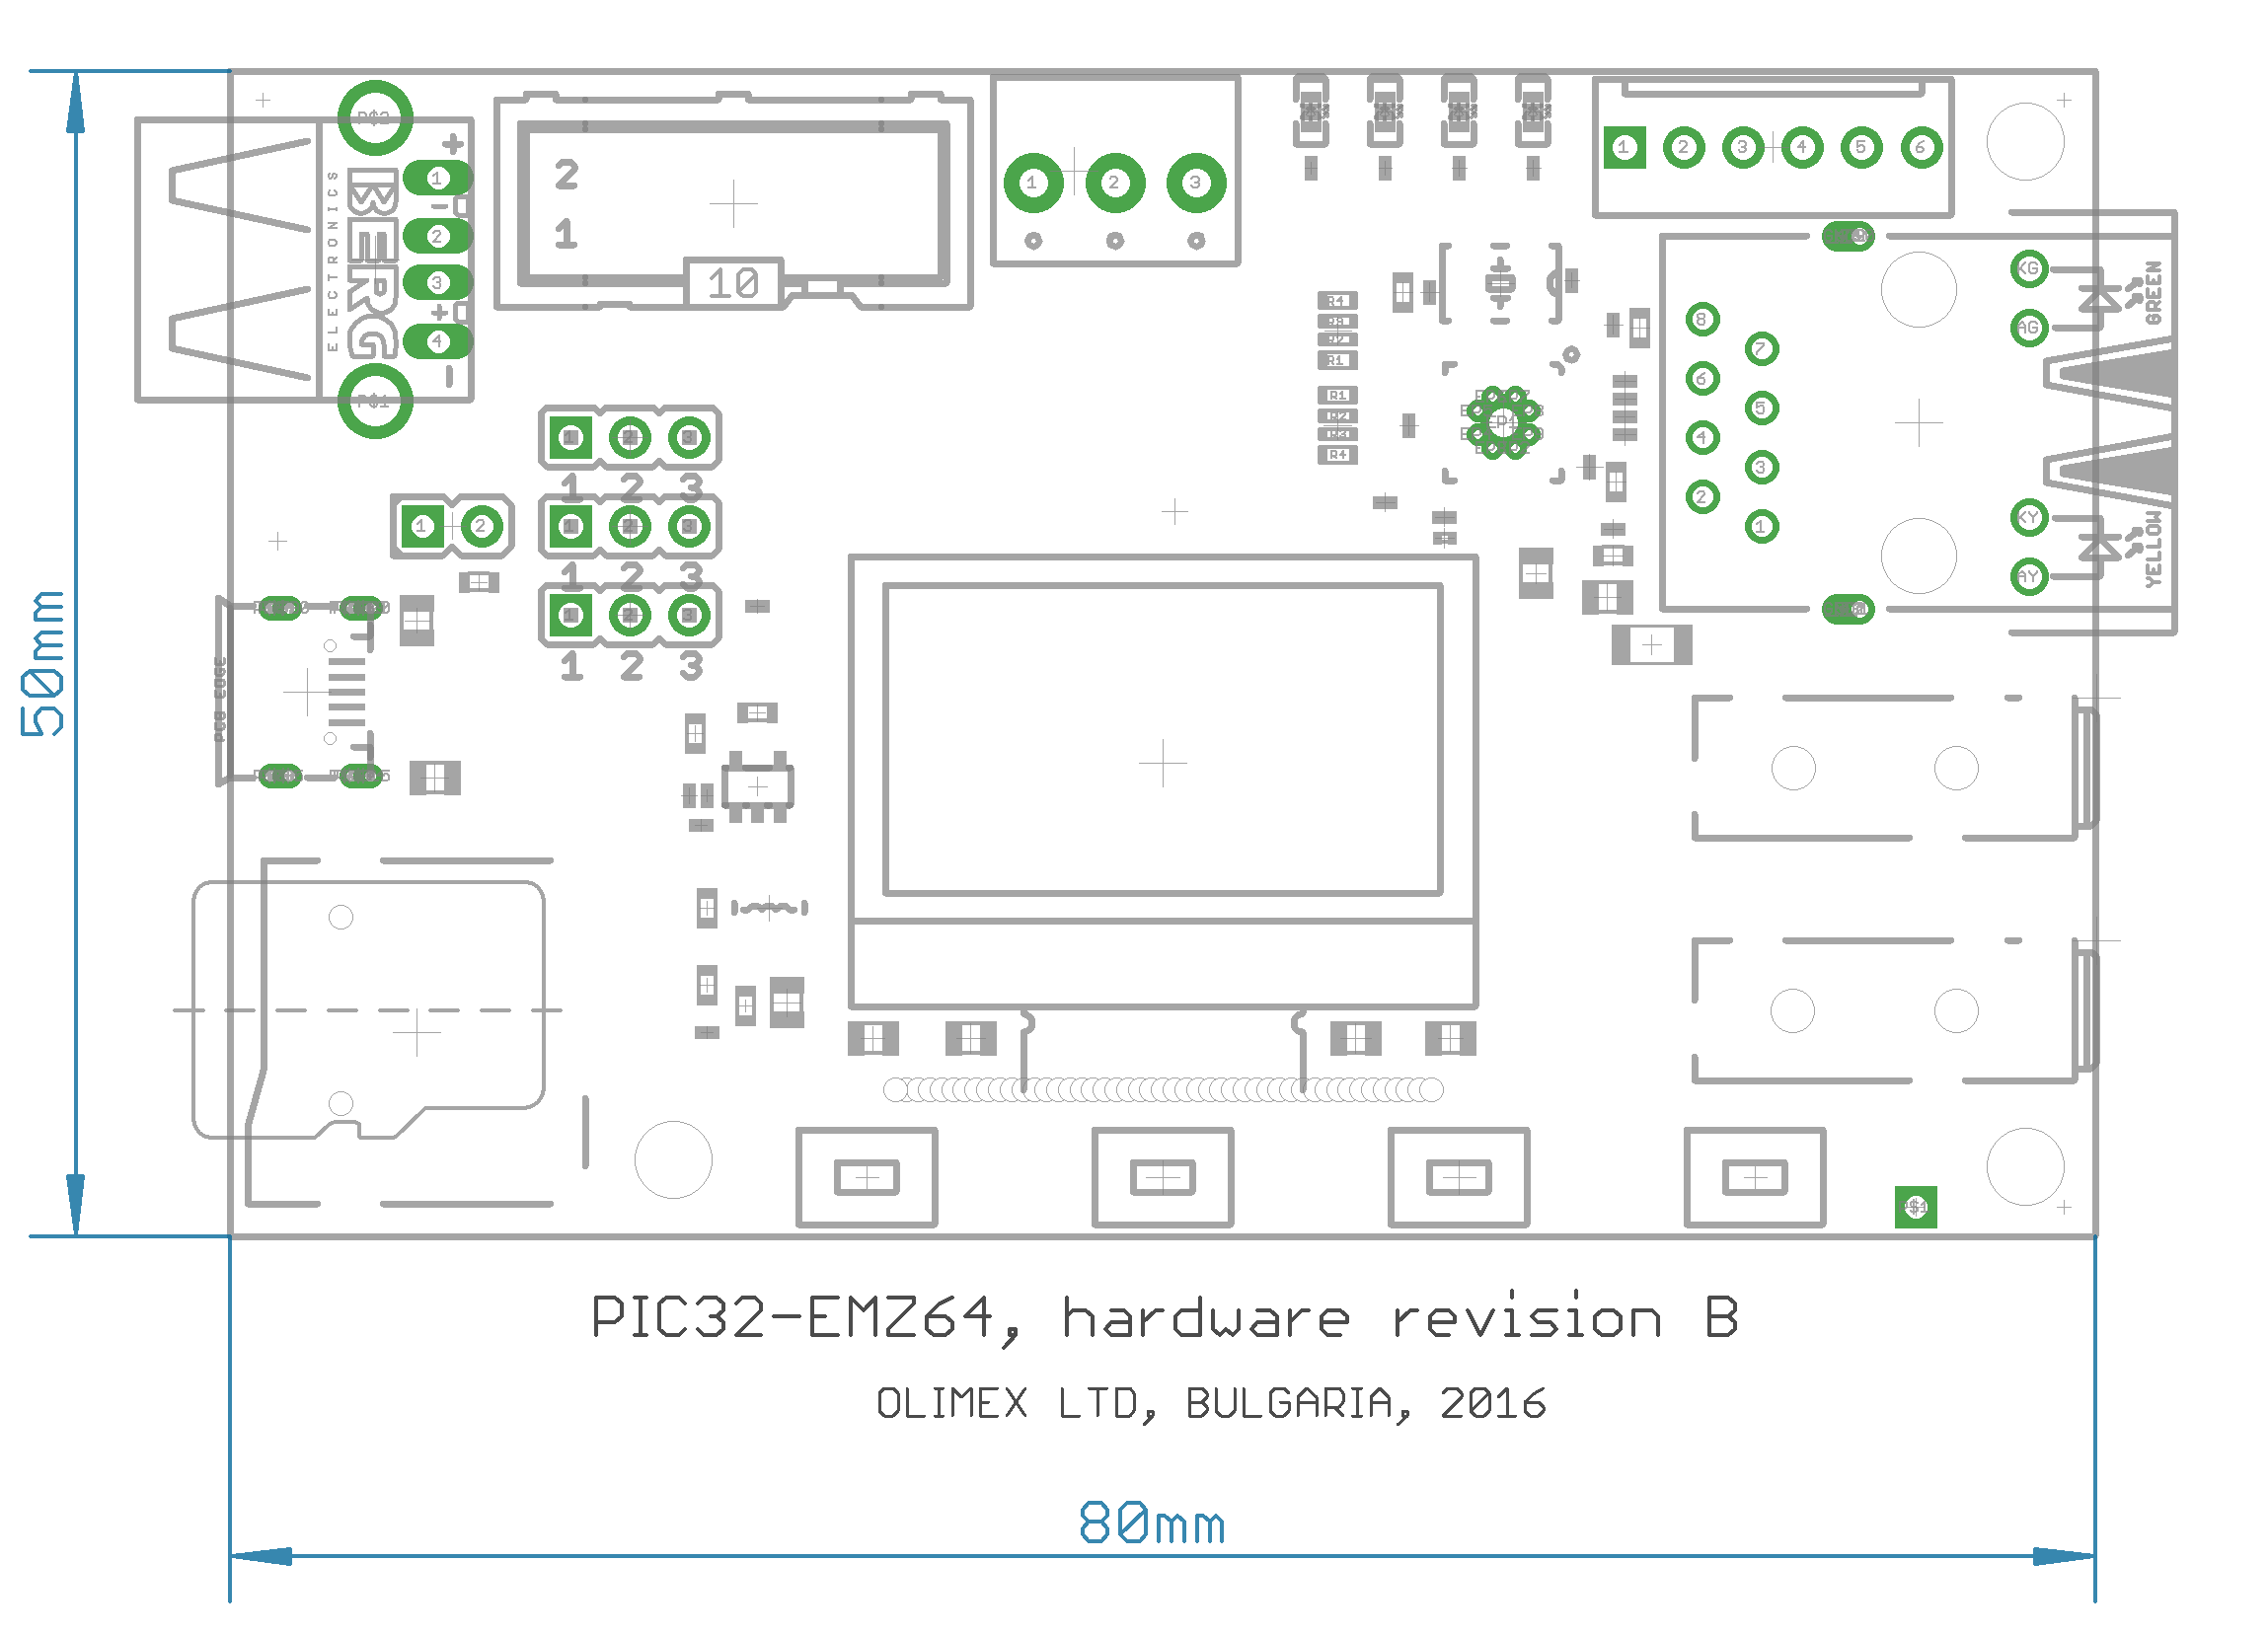 Pic32 Emz64 Open Source Hardware Board Eagle Cad Controller Schematic Display In Pdf Format And Design Sources For